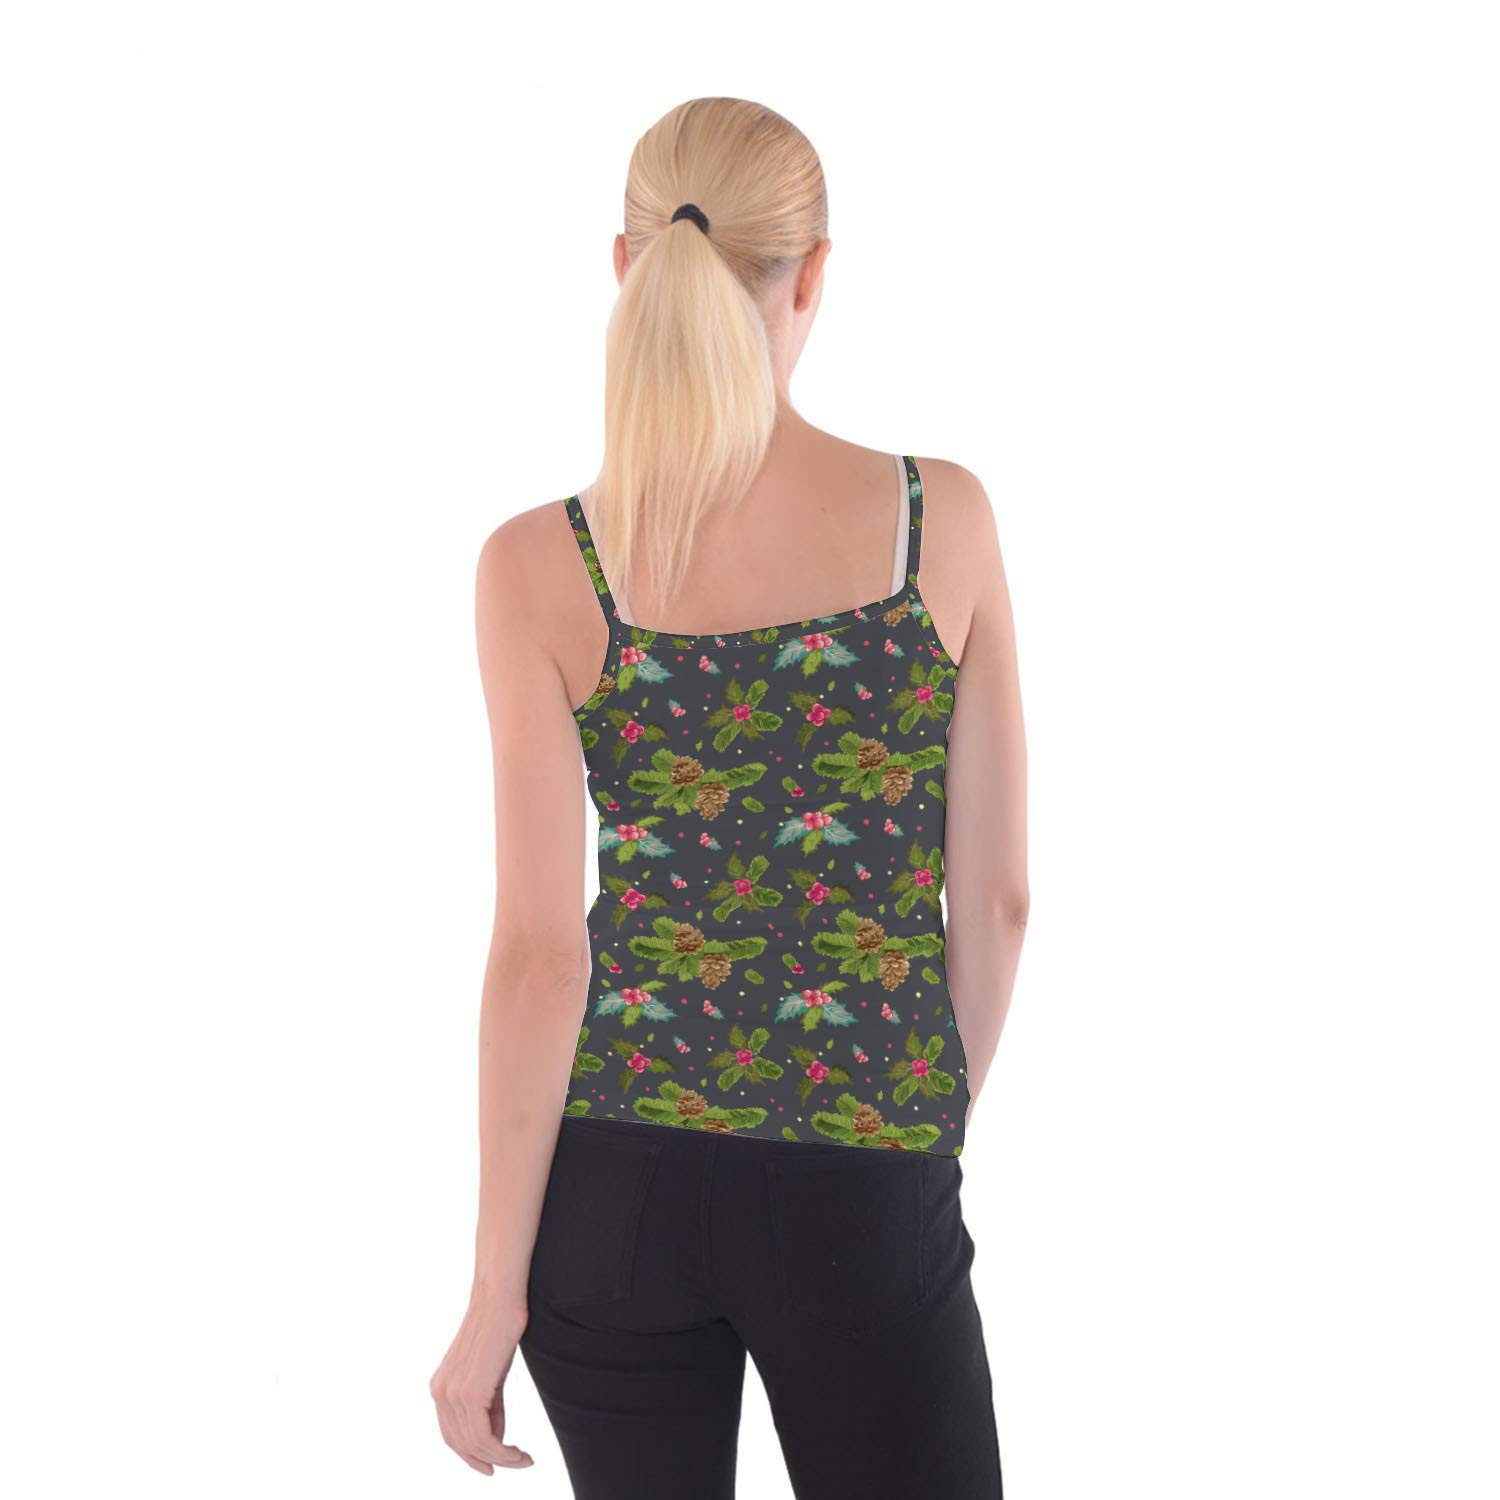 Queen of Cases Christmas Holly Camisole Spaghetti Strap Tank Top